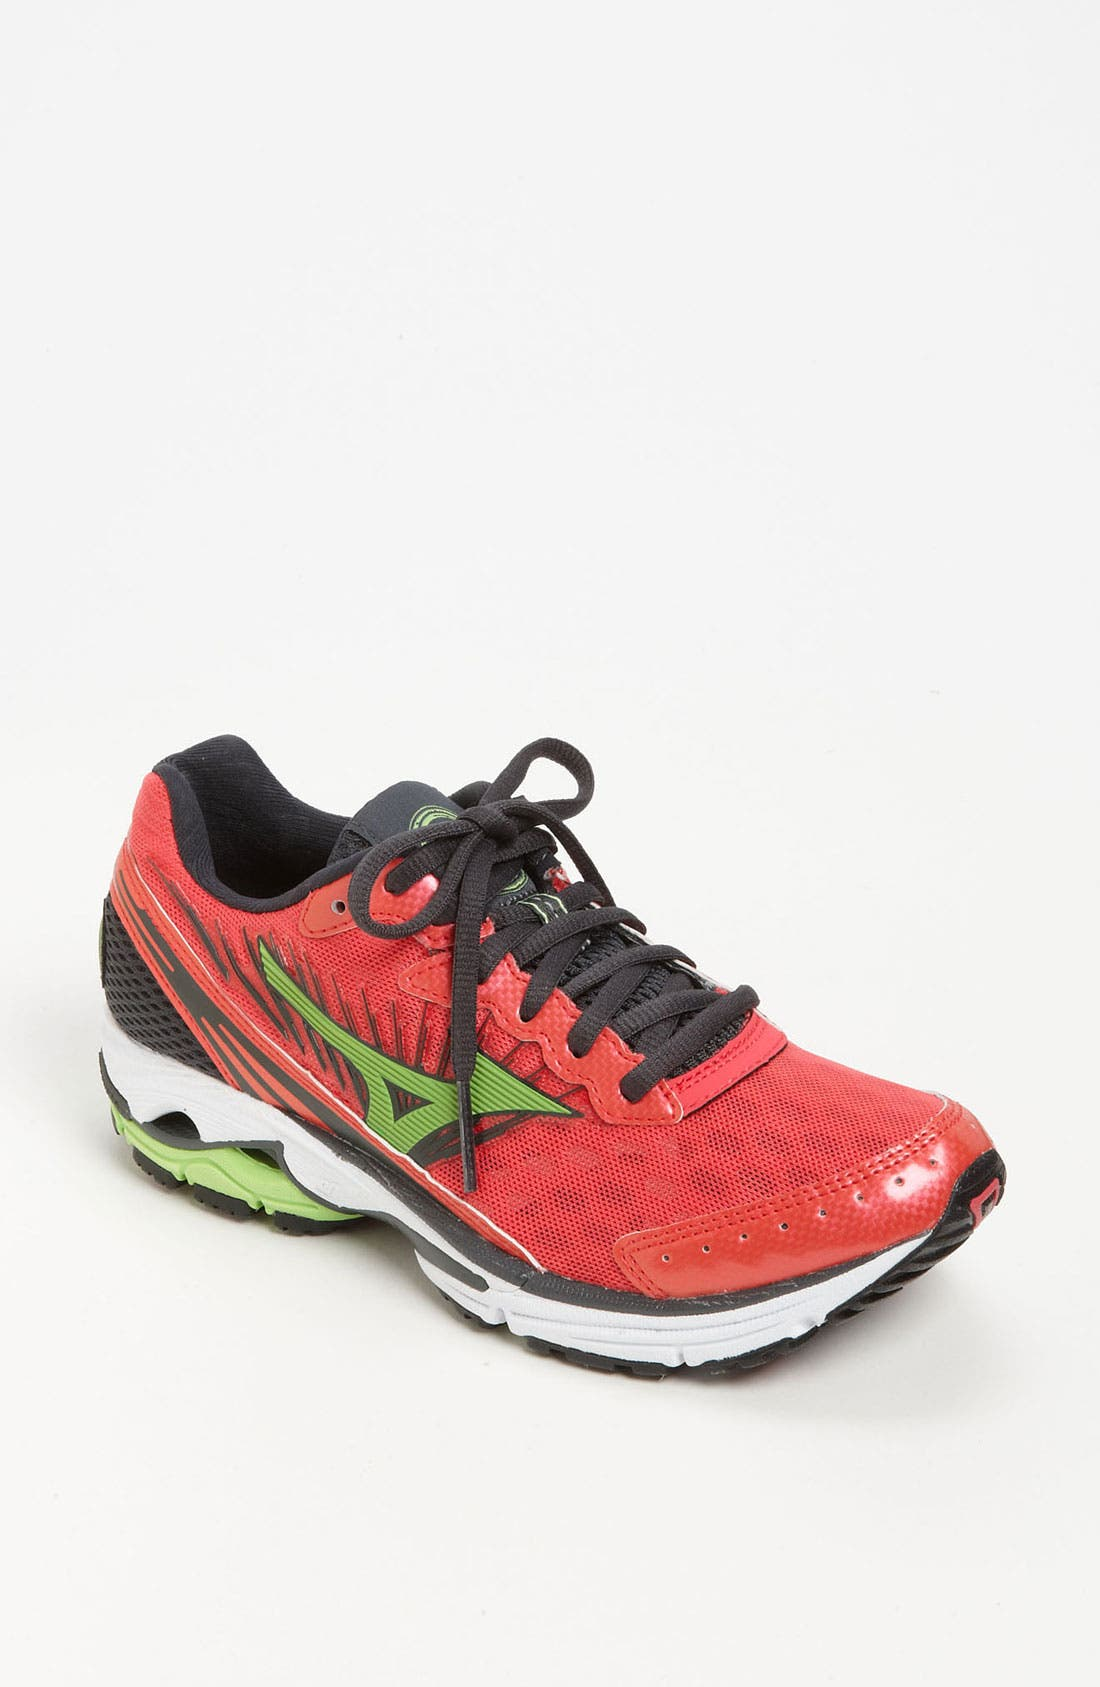 Main Image - Mizuno 'Wave Rider 16' Running Shoe (Women)(Regular Retail Price: $114.95)